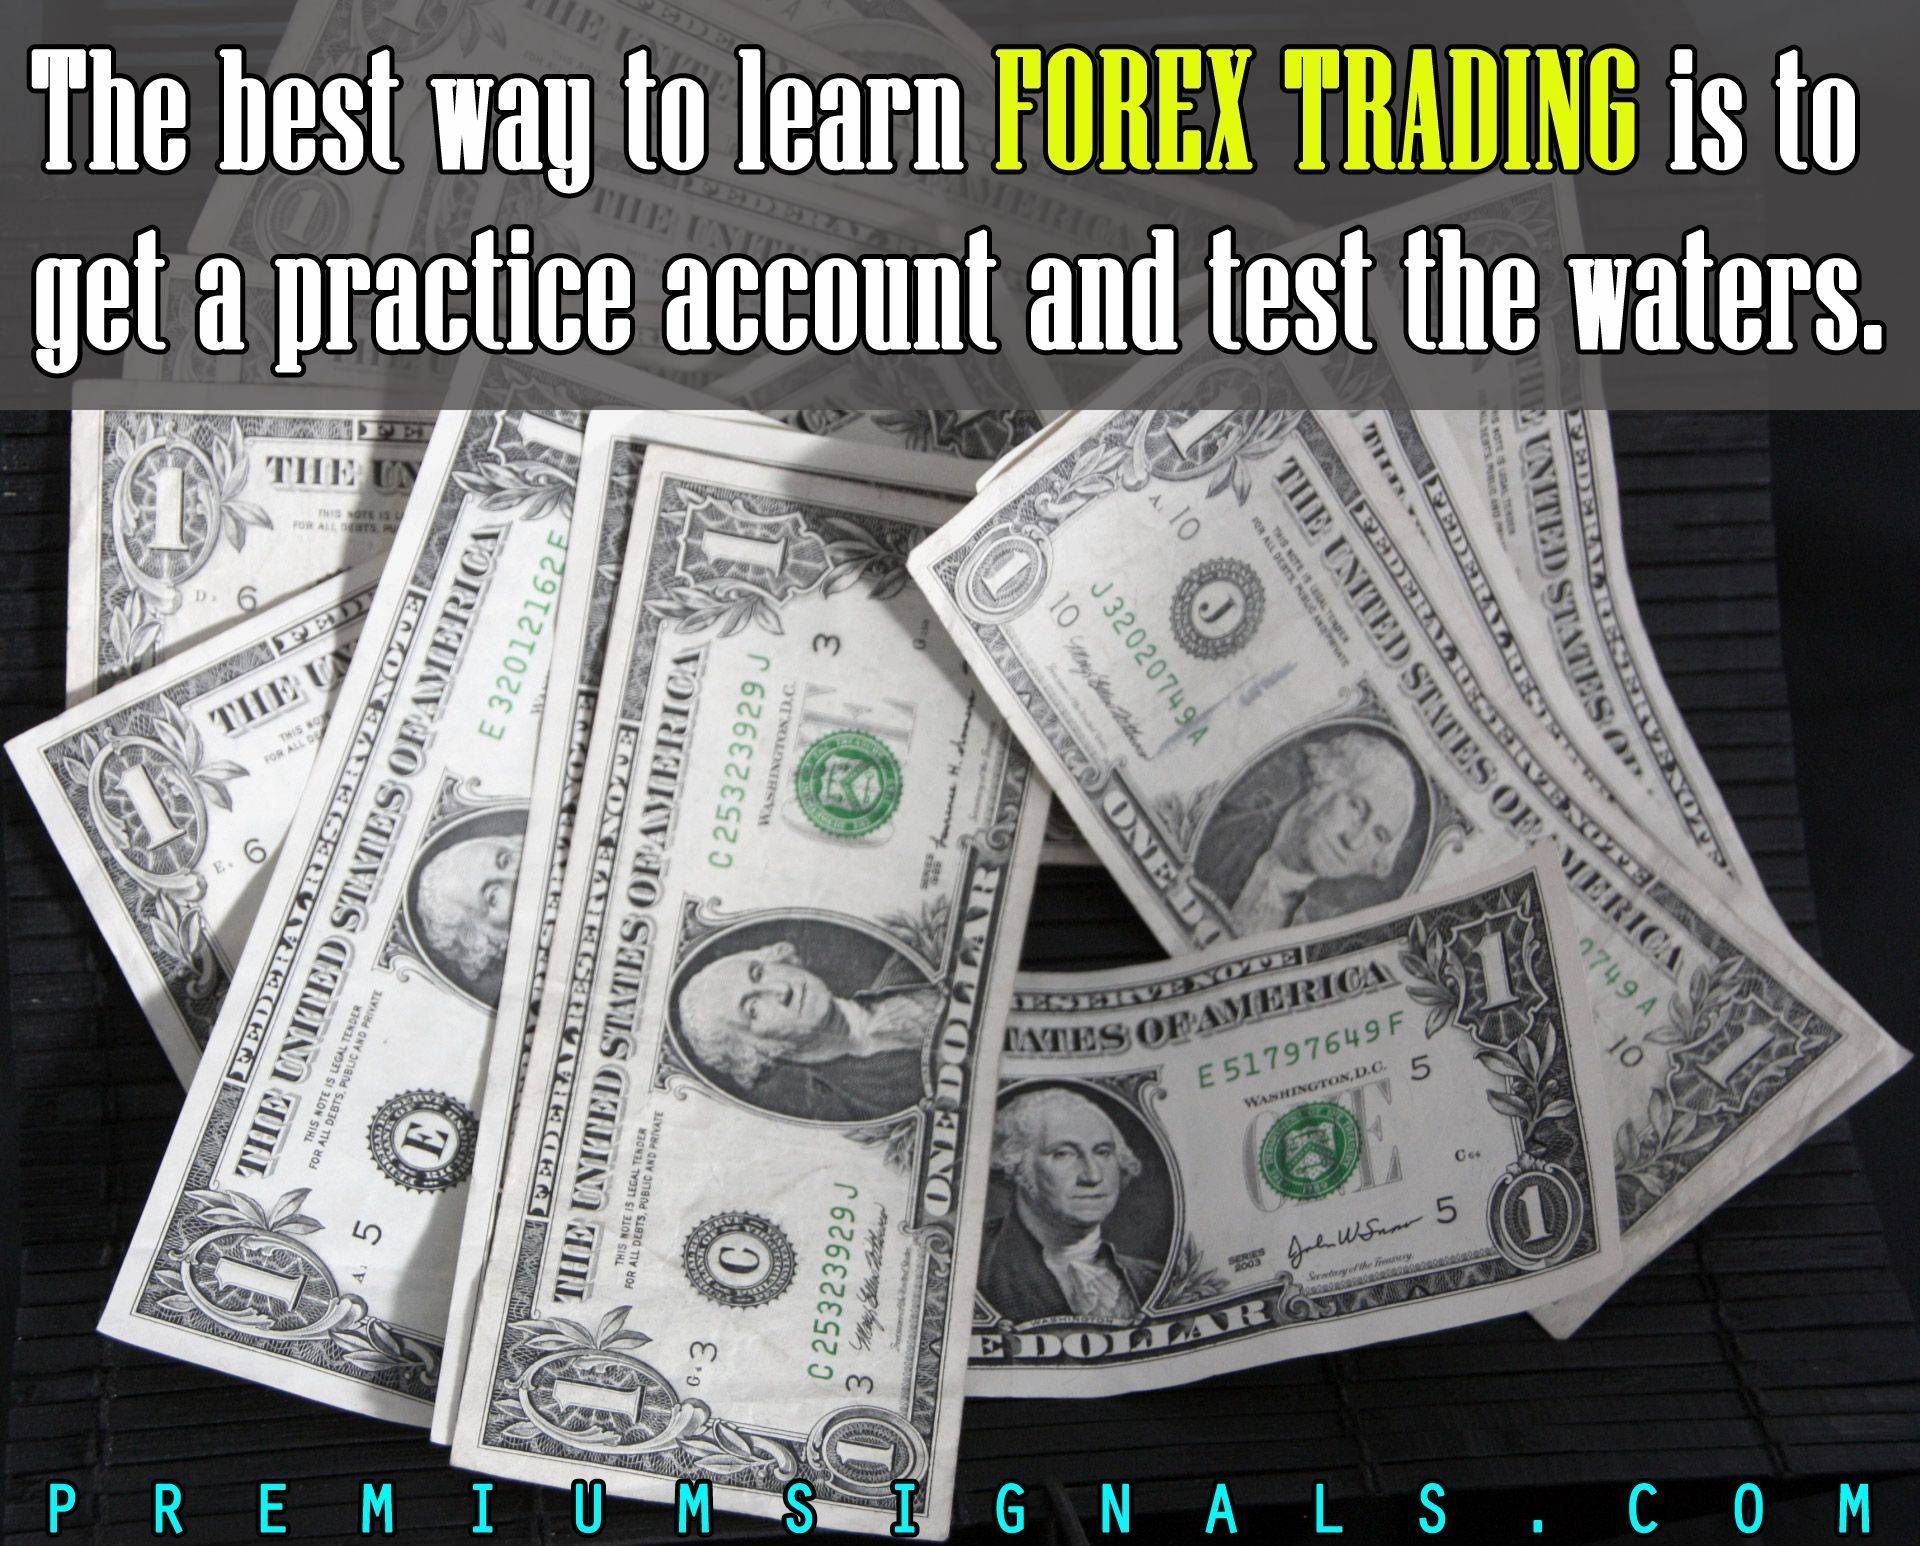 The Best Way To Learn Forex Trading Is Get A Practice Account And Test Waters Forexadvice Tradeforextherightway